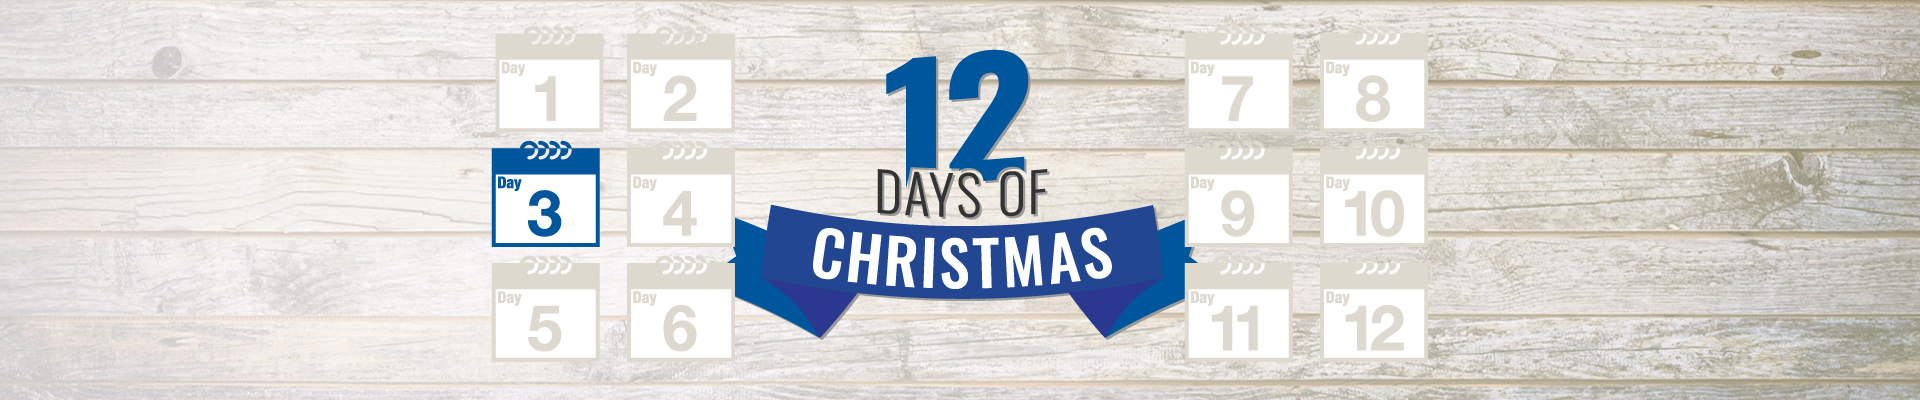 12 Days of Christmas Deals - 2017-12-15